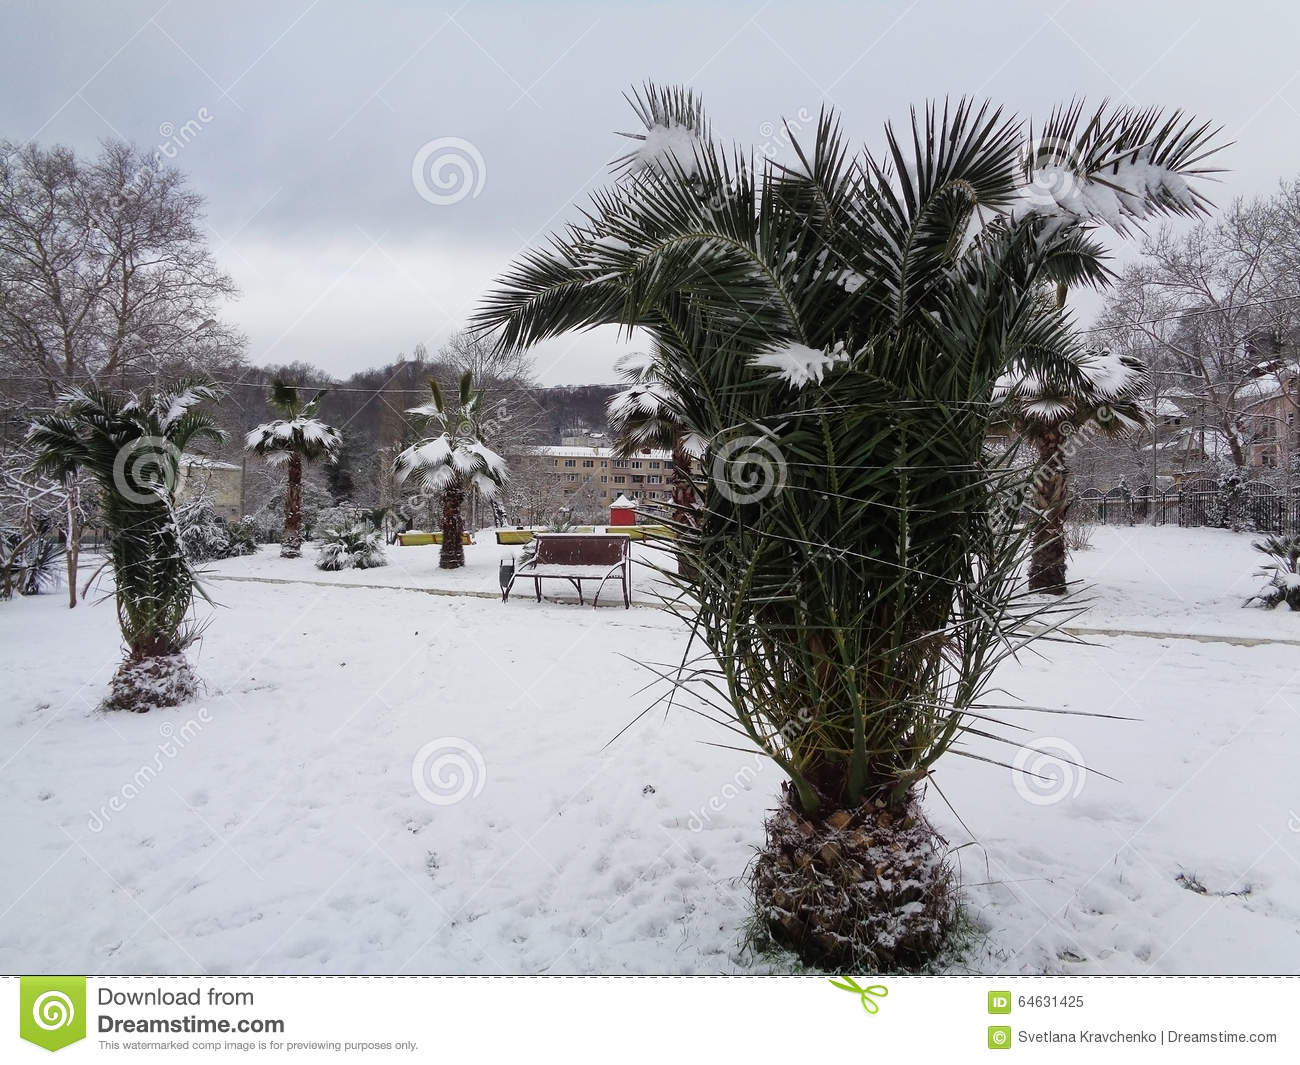 Palm trees in the snow, Sochi, Russia